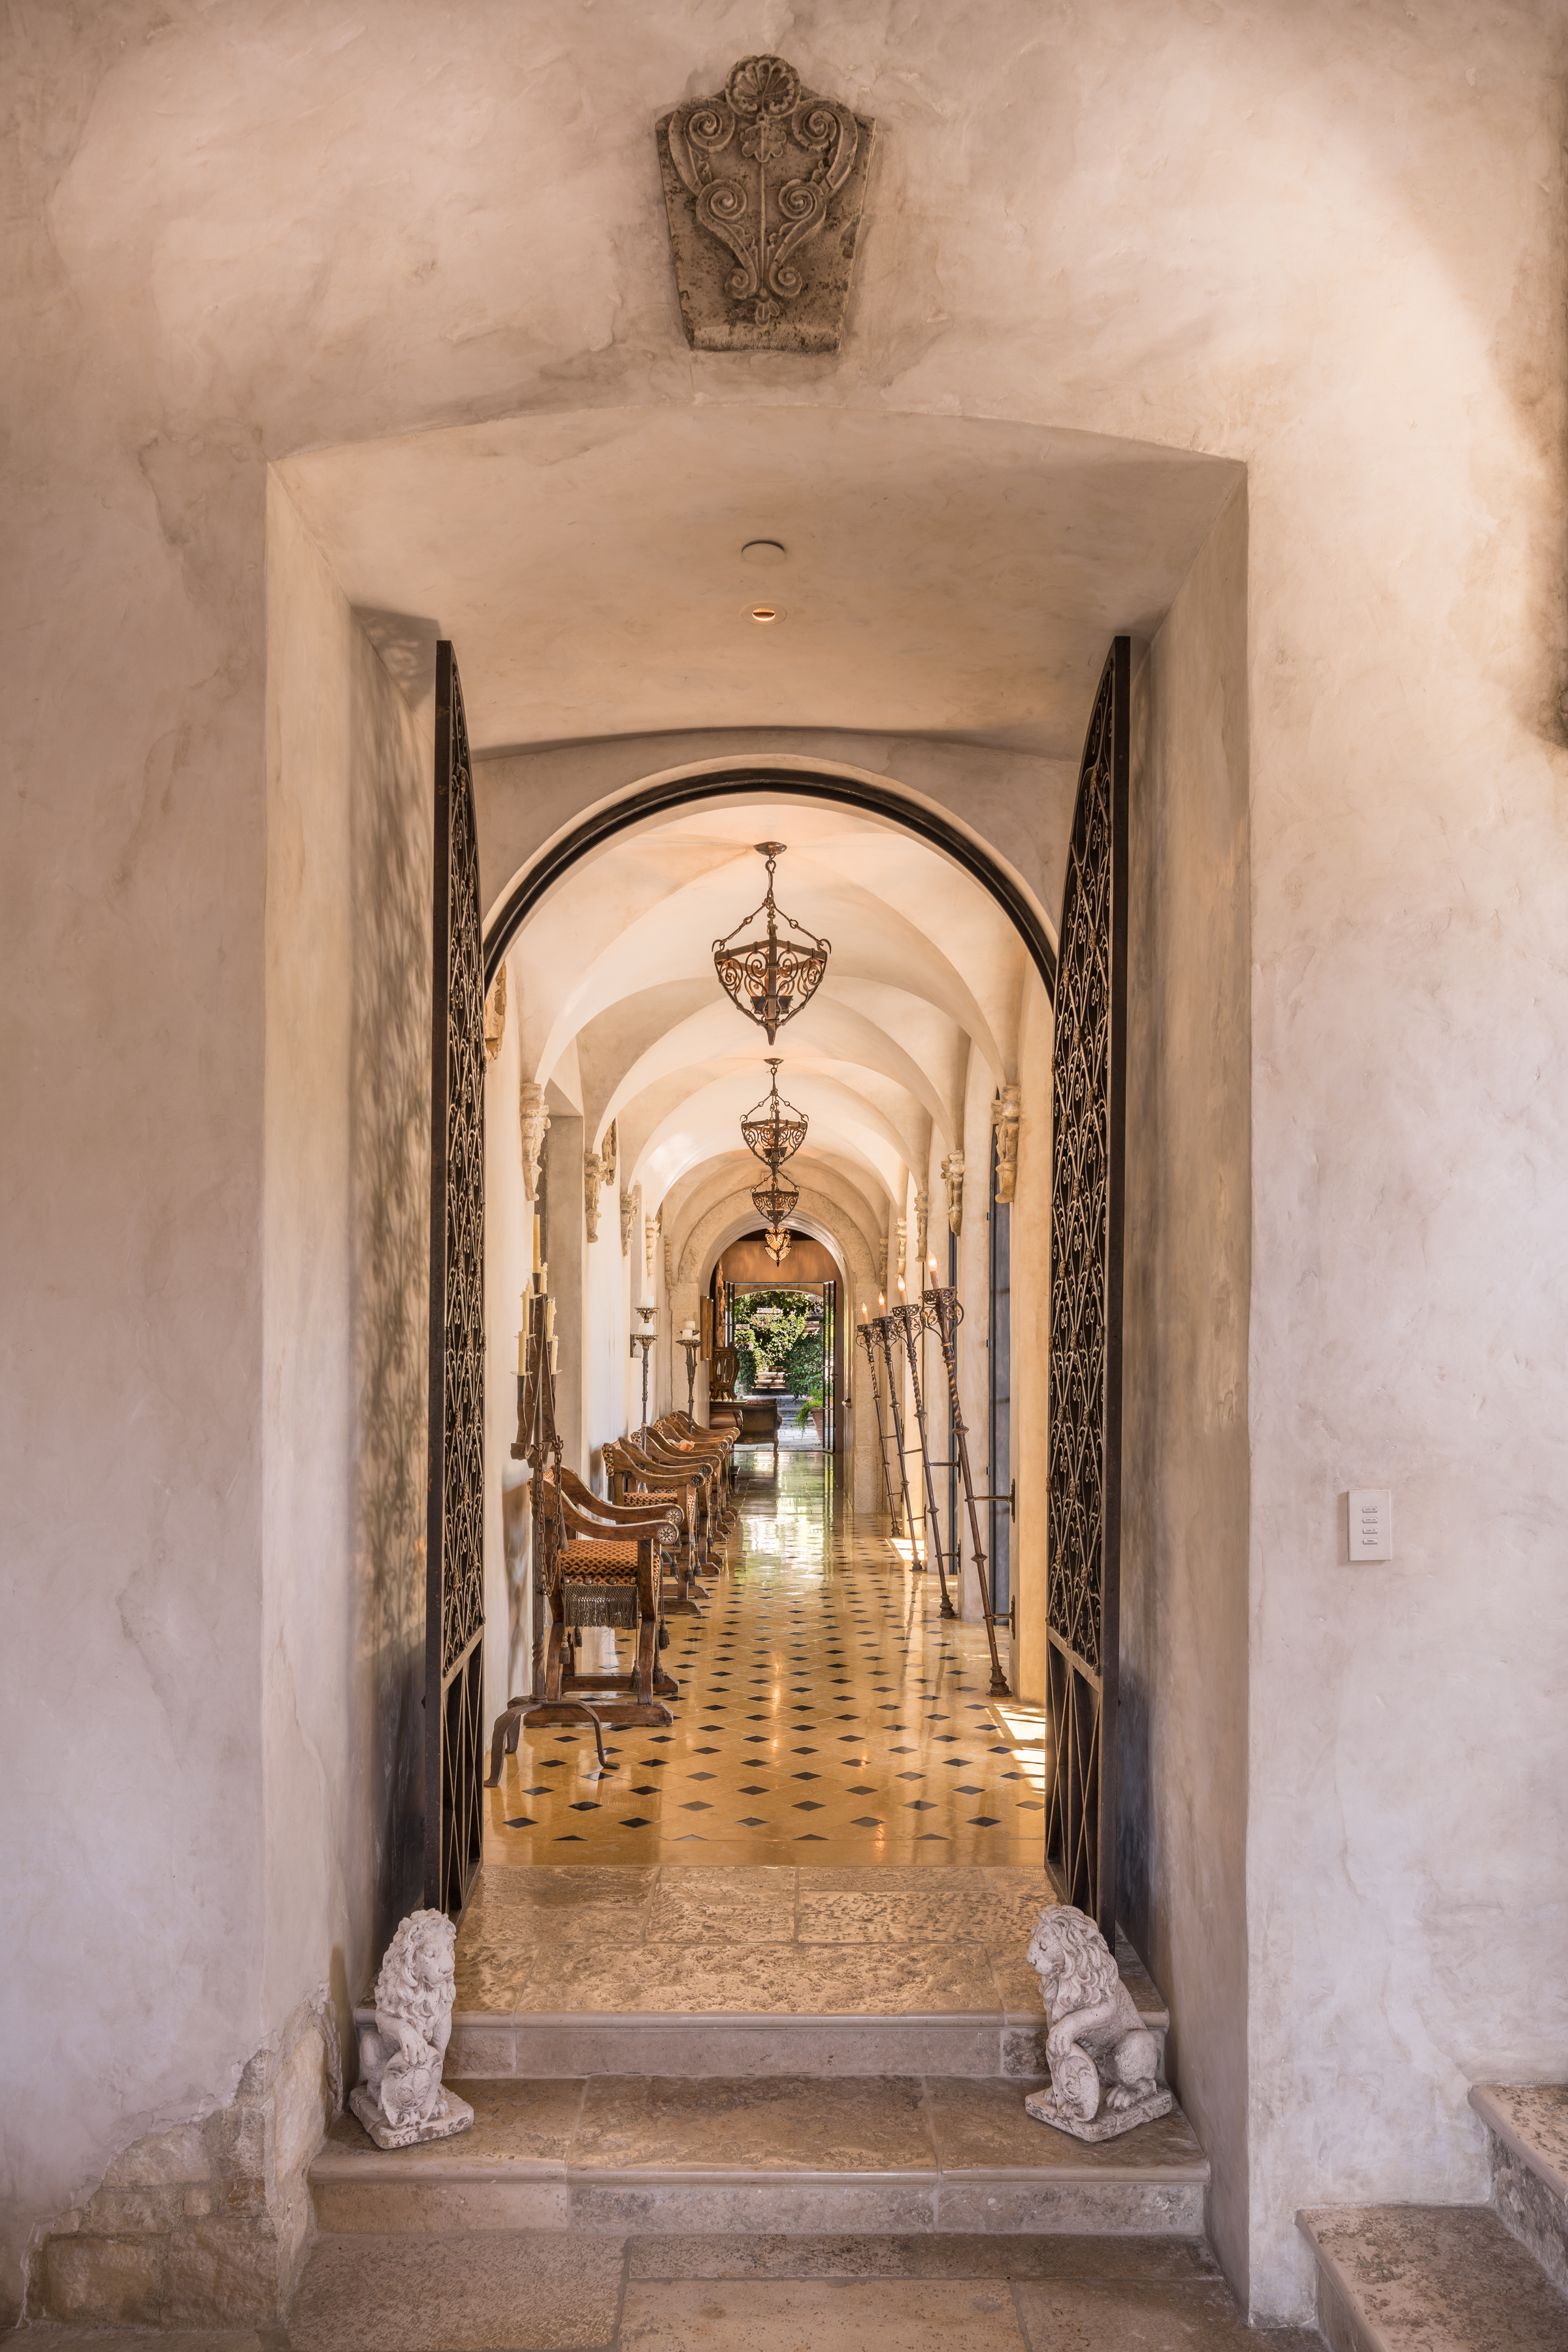 The grand entrance is thoughtfully lined with iron details and French doors that let in abundant light.